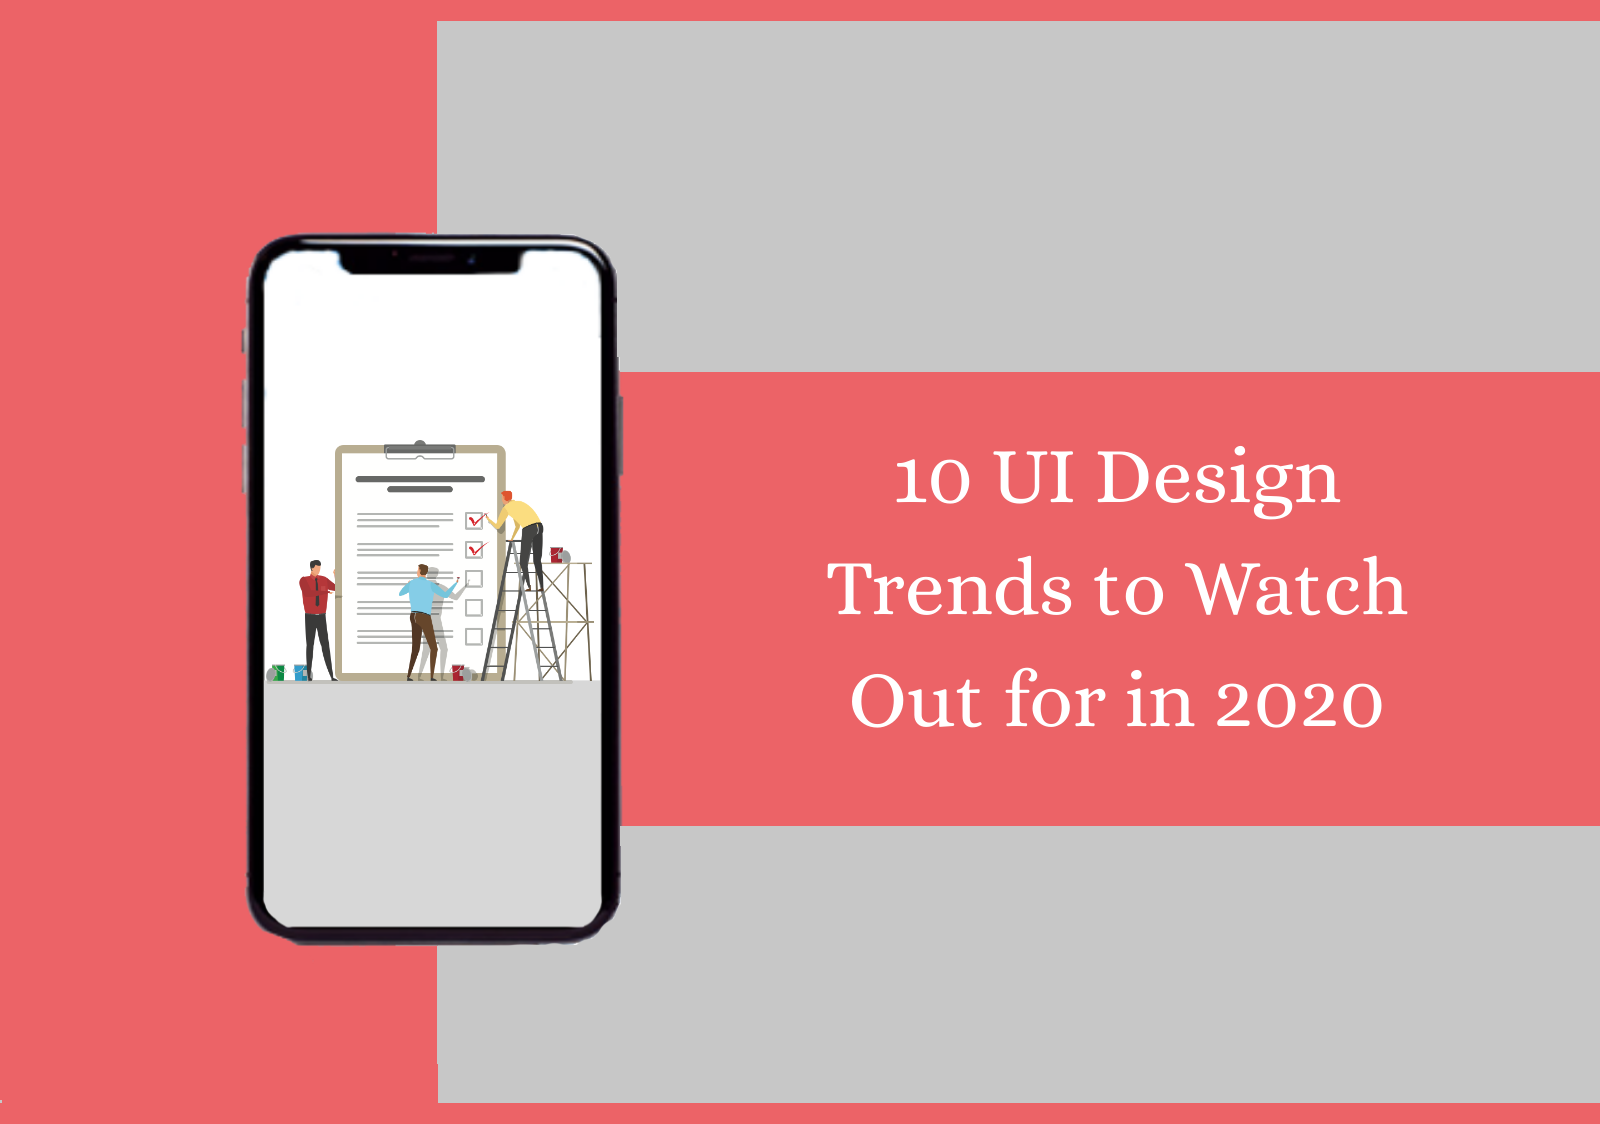 10 UI Design Trends to Watch Out for in 2020